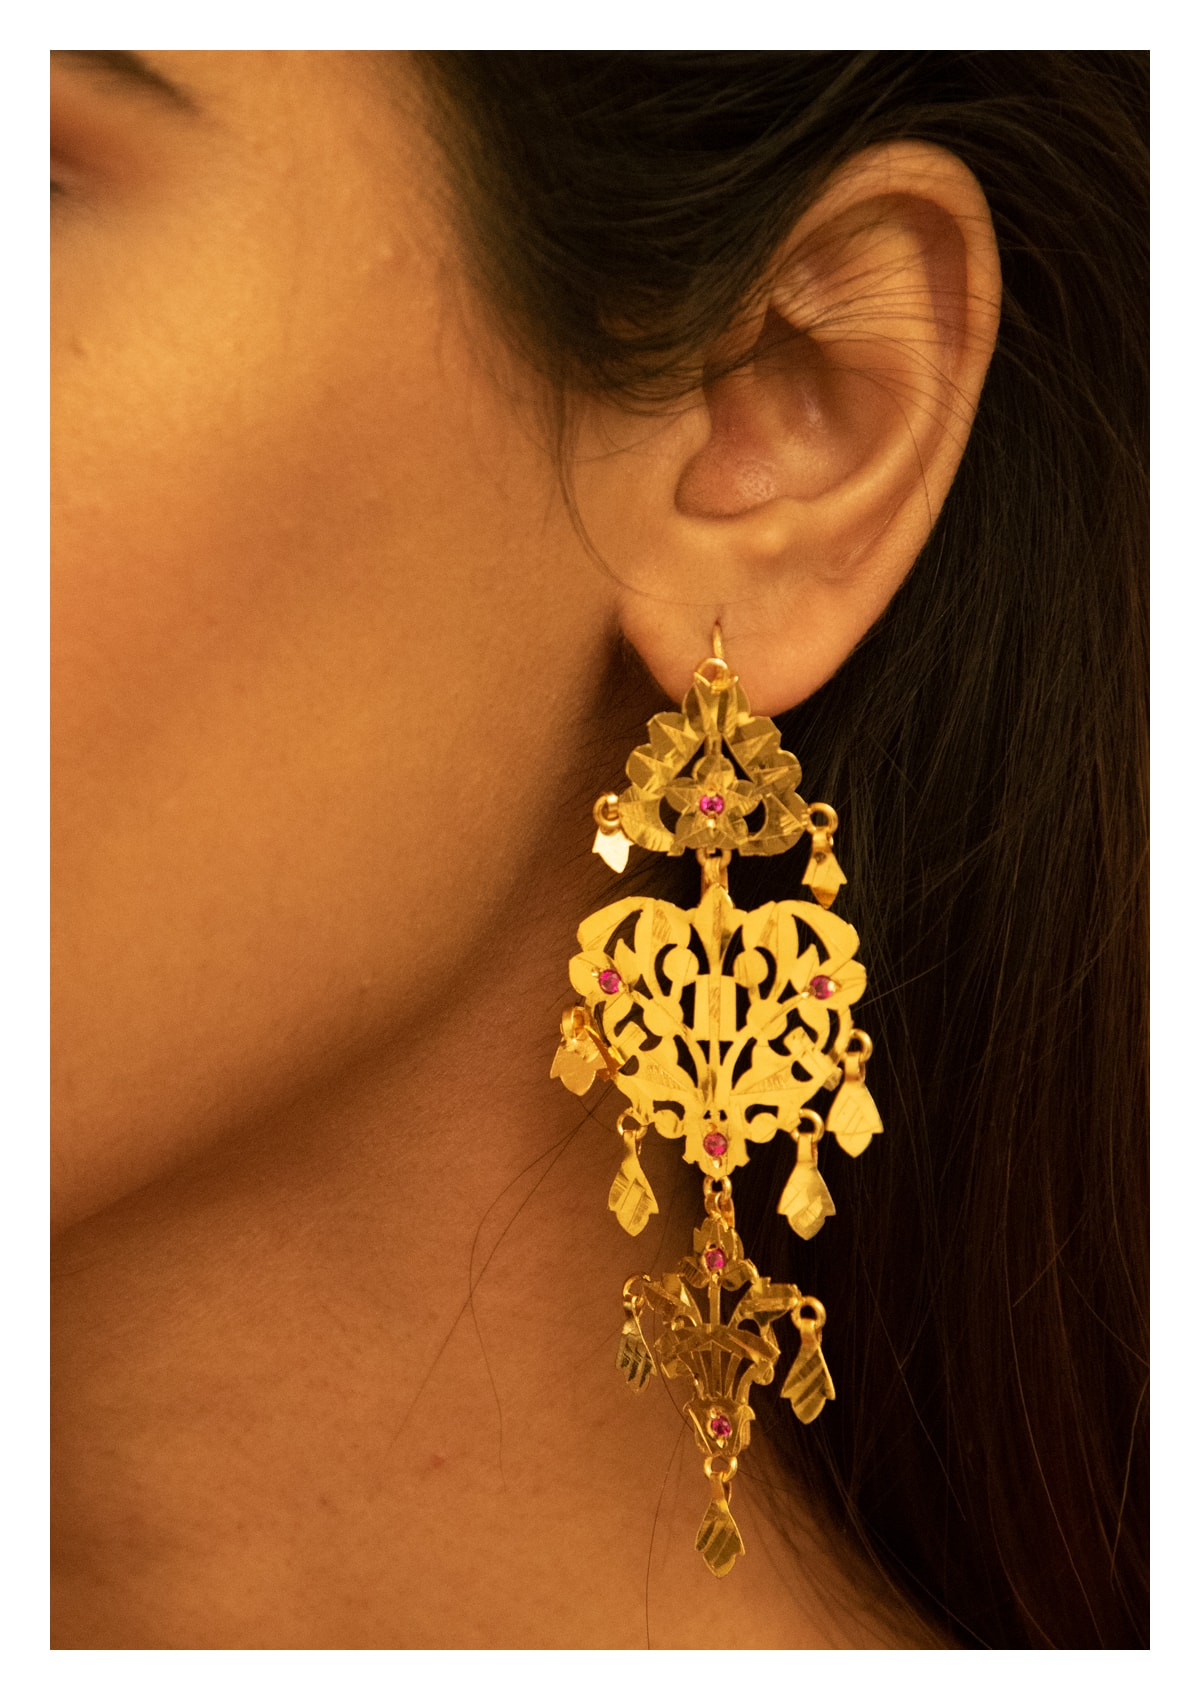 Saira Handmade Gold Tone Silver Earrings